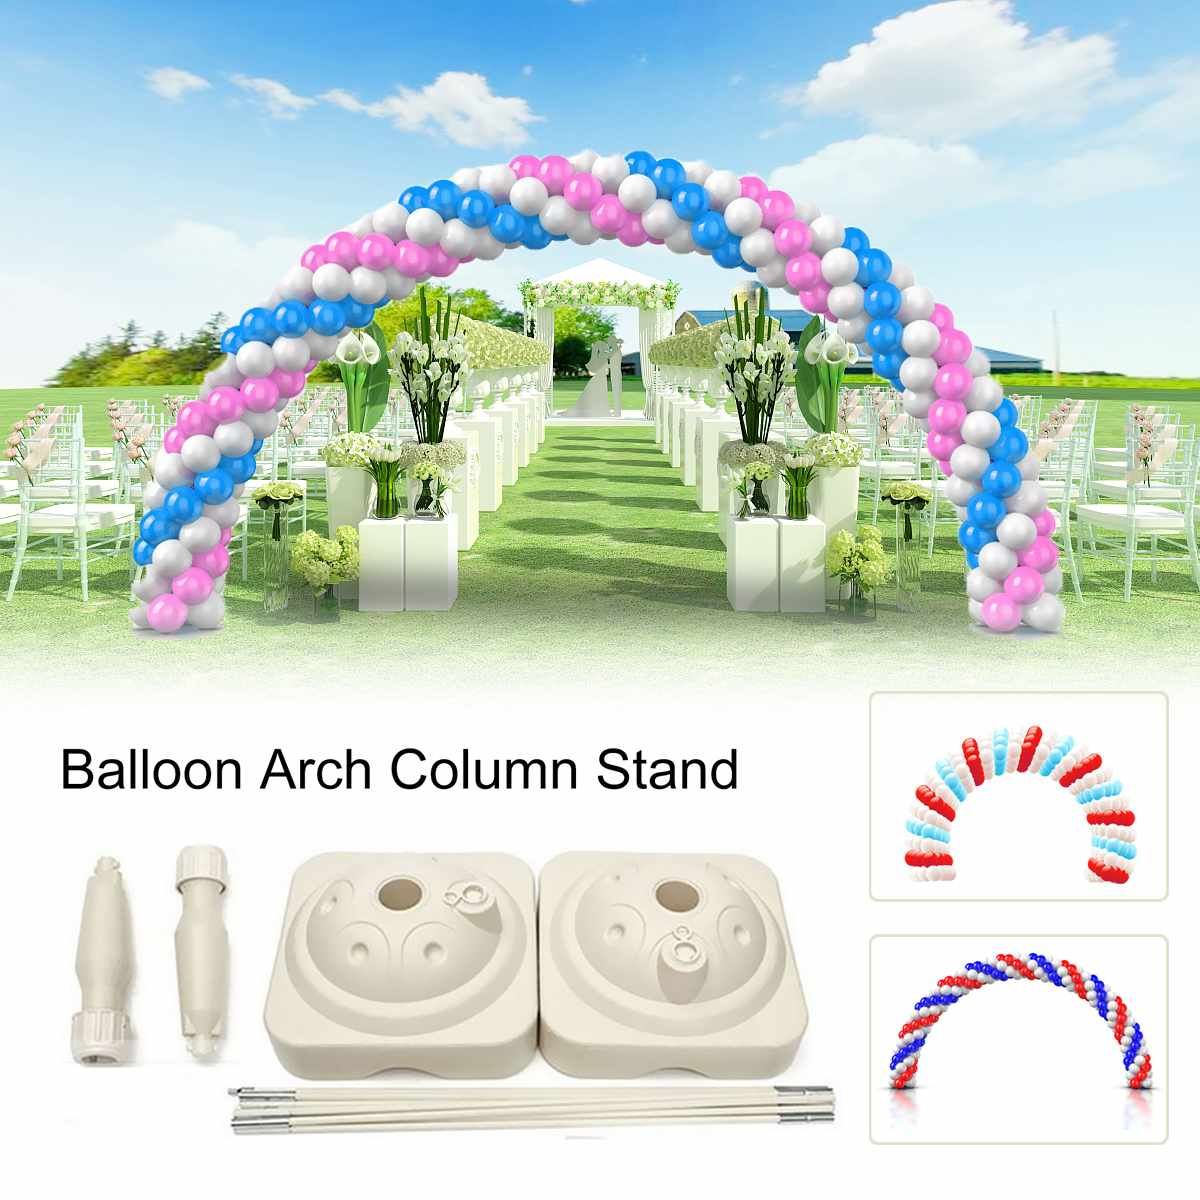 Large Balloon Arch Stand Base Pot Kit Adjustable Clip Connector Wedding Party Event Arches Shop Display DIY Decoration Supplies